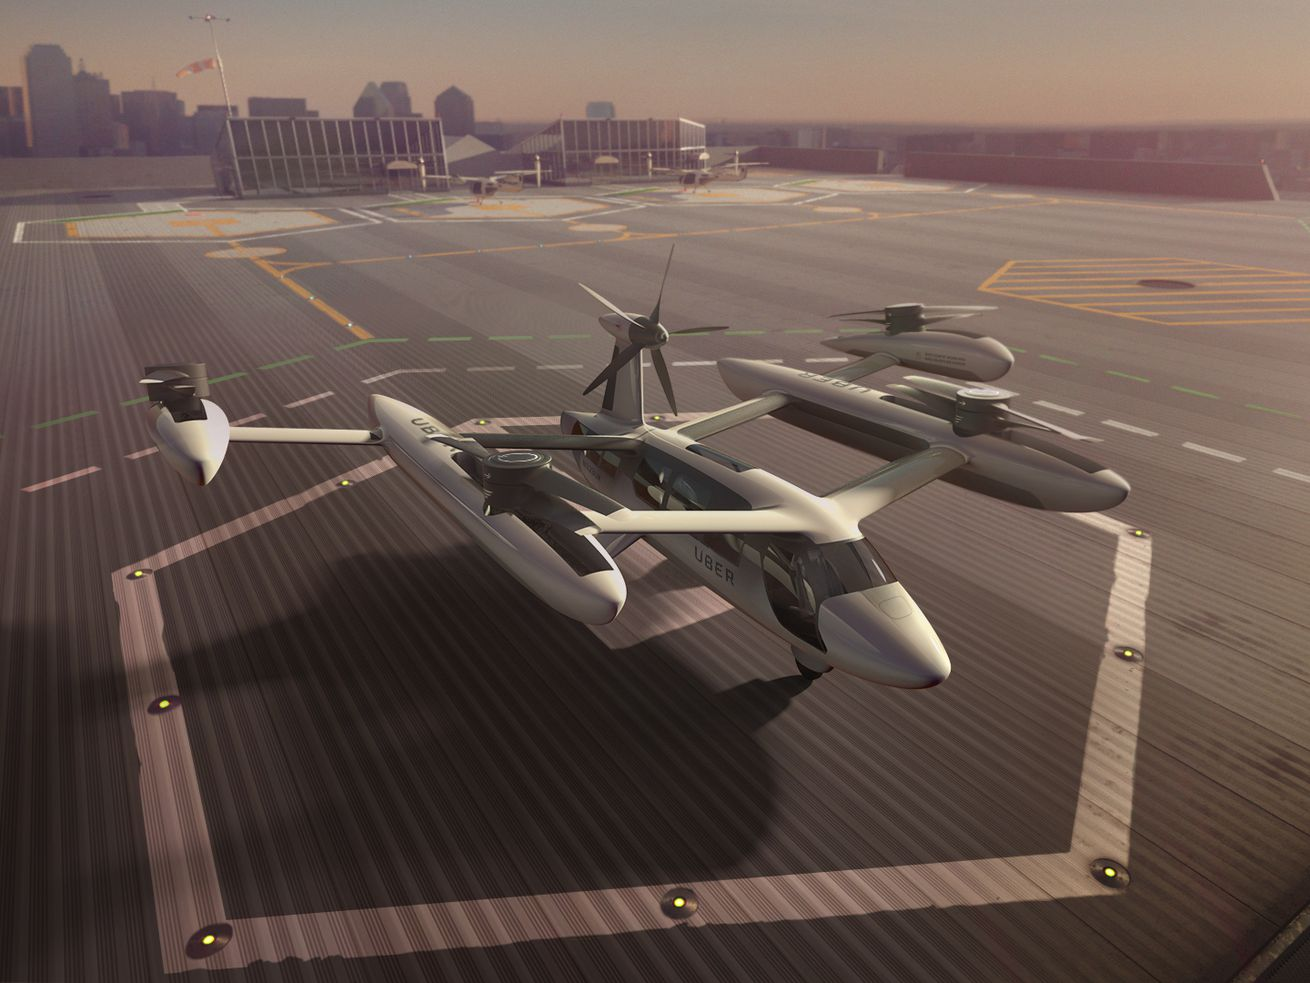 Uber's chief product officer Jeff Holden, who led the company's flying car effort, has stepped down